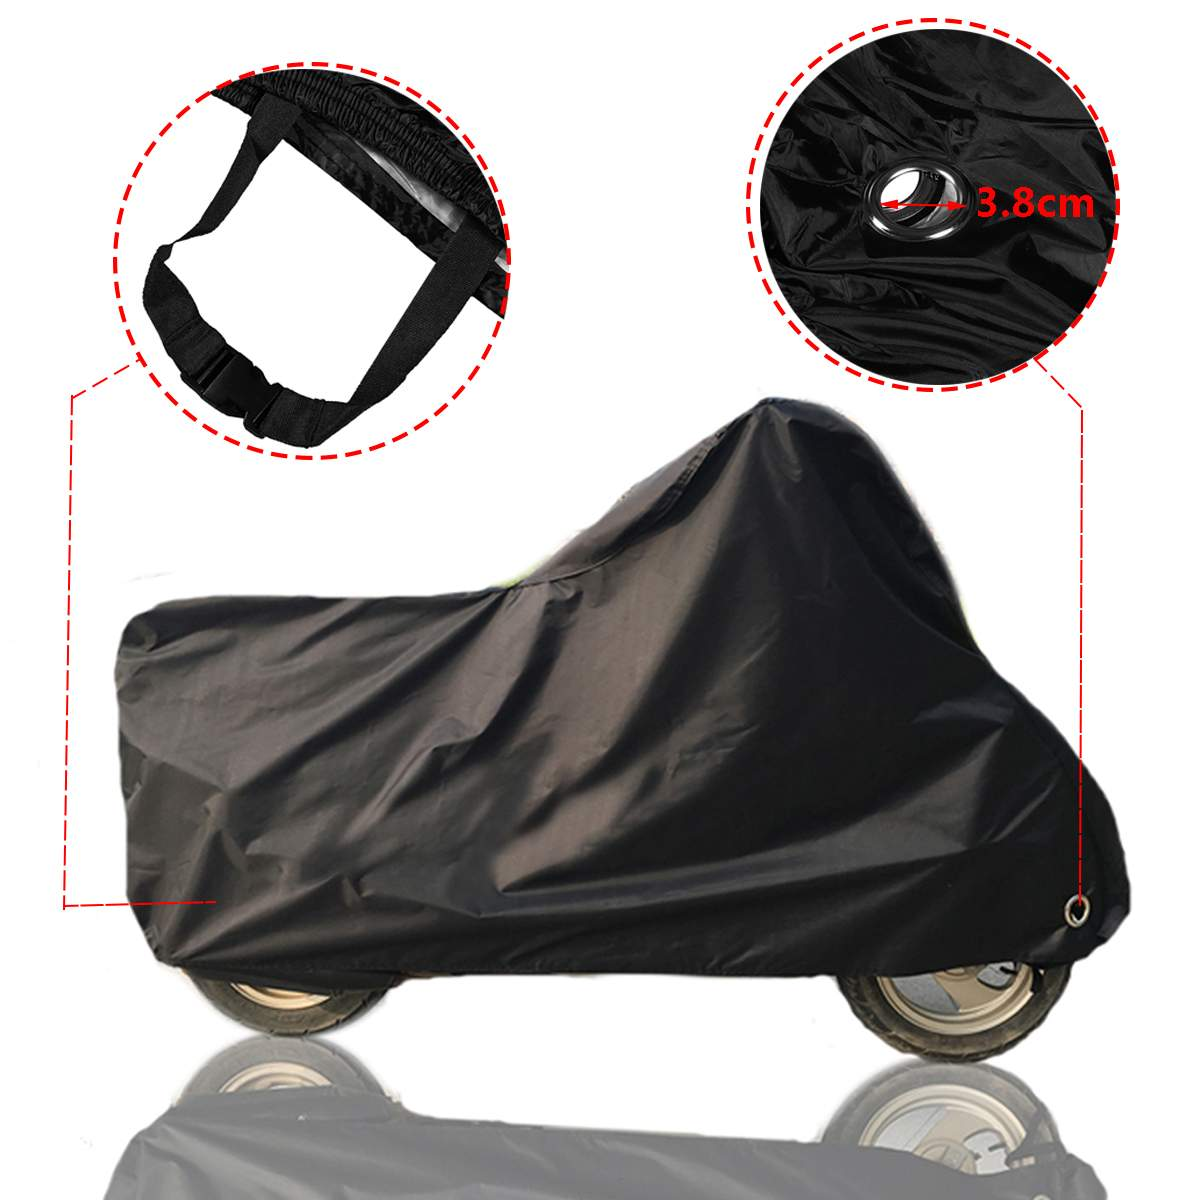 L/XL/2XL/3XL/4XL 190T Case Waterproof Motorcycle Cover Outdoor Dust UV Protector 190T Polyester Elastic Hem Protect Rain DustL/XL/2XL/3XL/4XL 190T Case Waterproof Motorcycle Cover Outdoor Dust UV Protector 190T Polyester Elastic Hem Protect Rain Dust